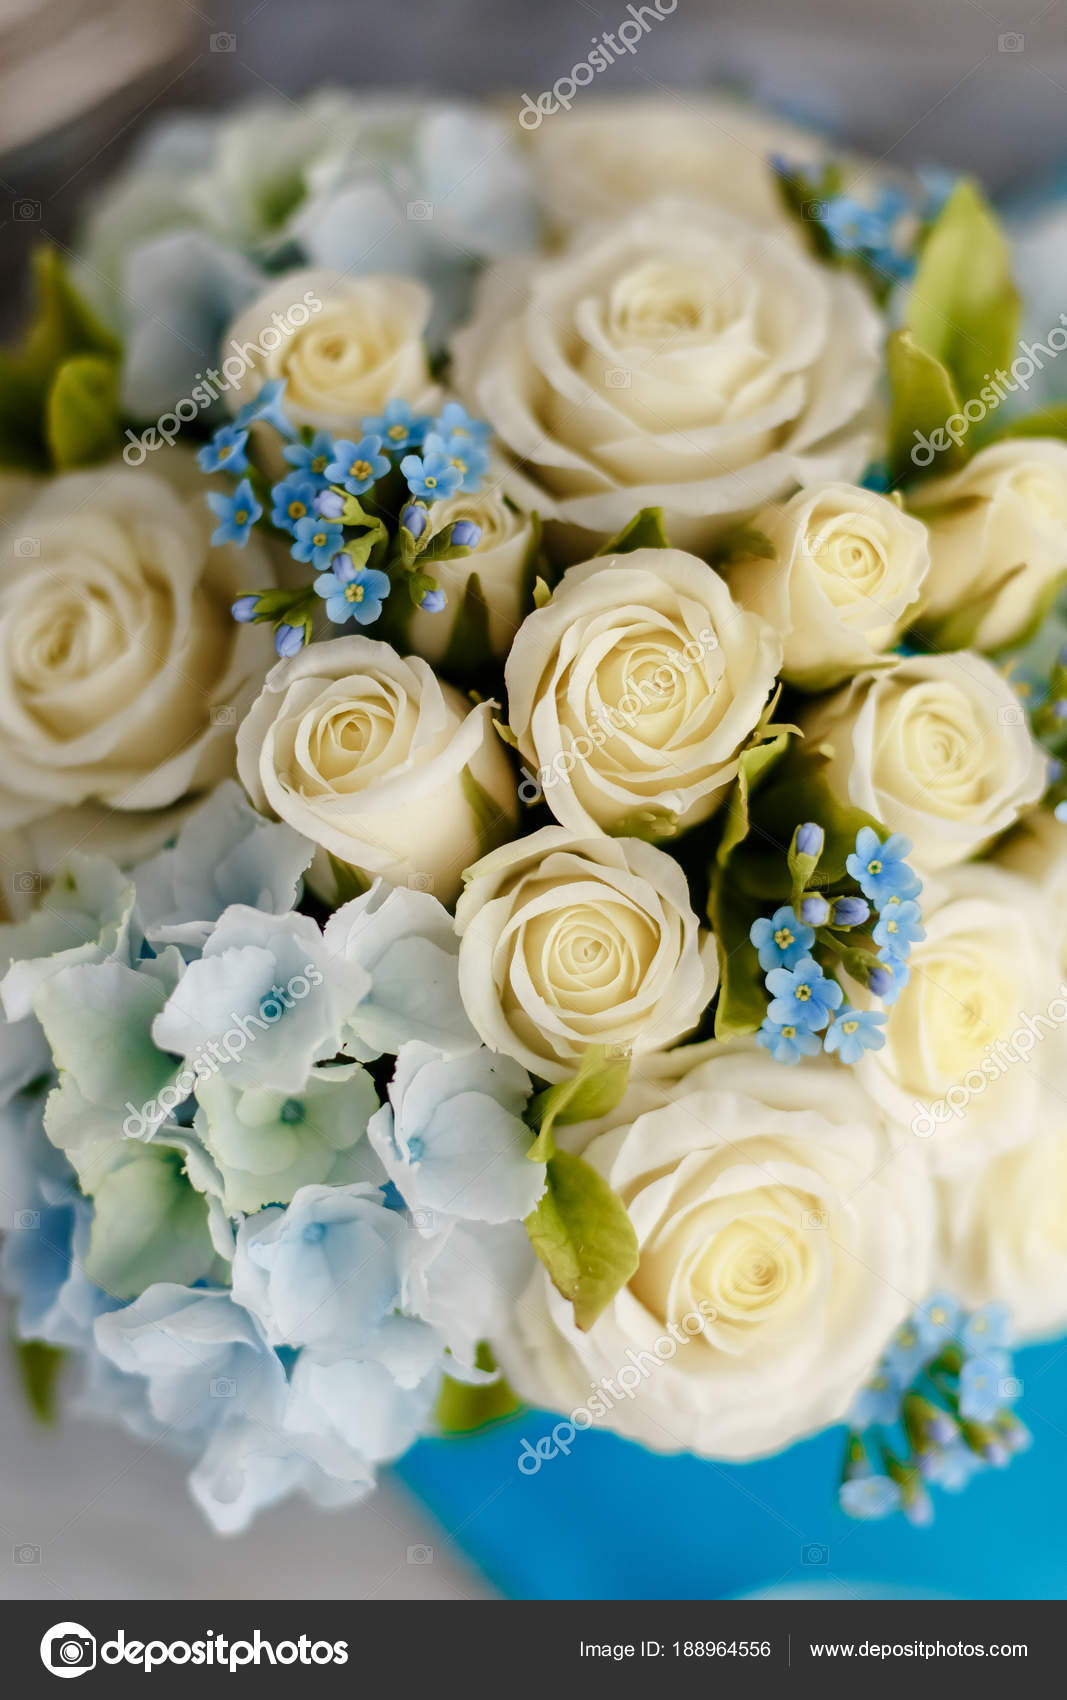 Exquisite spring bouquet blue white wedding flowers wedding floral exquisite spring bouquet blue white wedding flowers wedding floral decorations stock photo izmirmasajfo